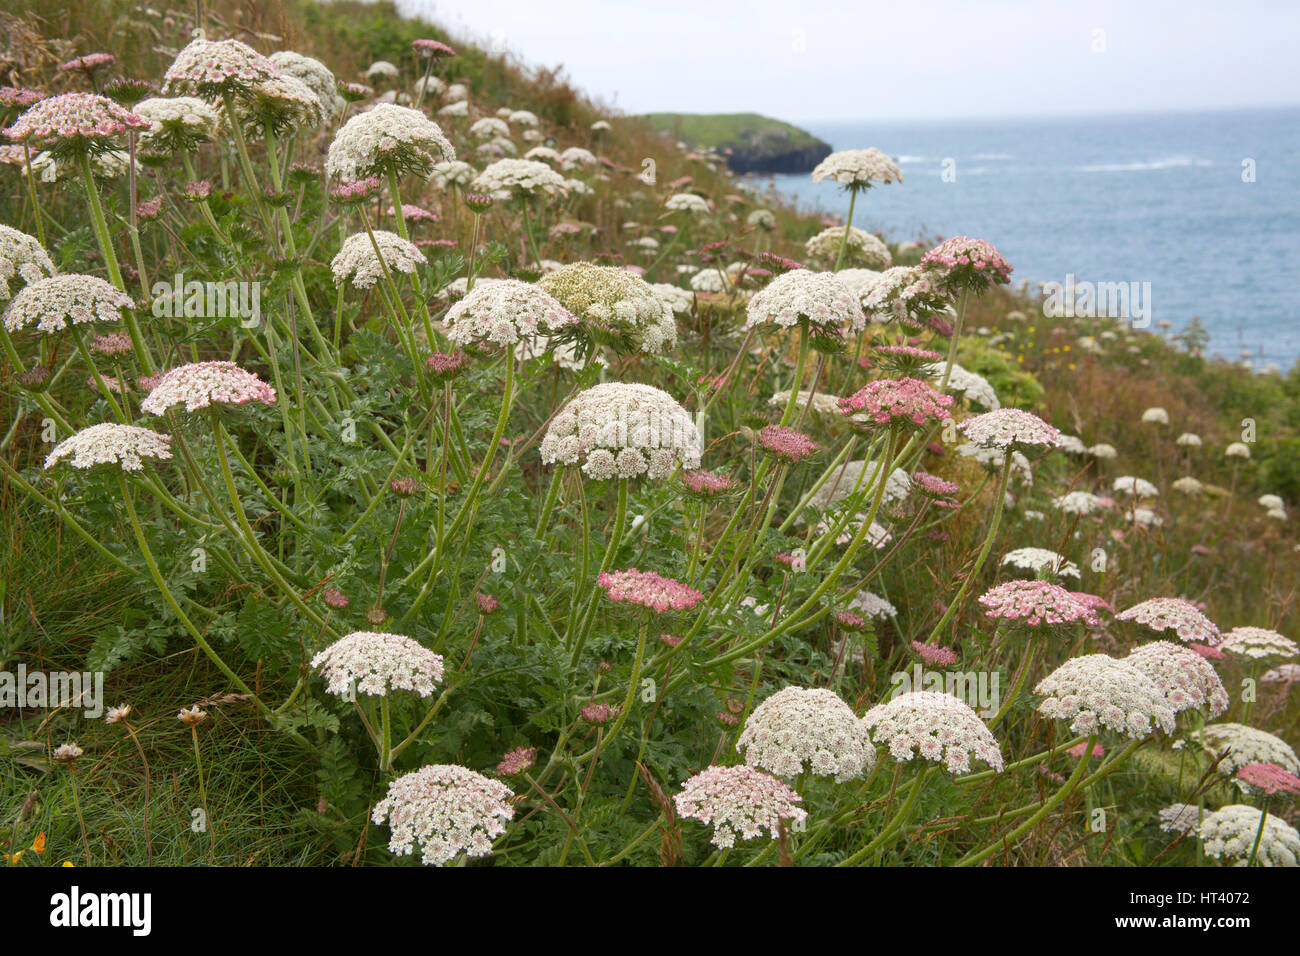 Sea Carrot, Daucus gingidium, Mullion and Predannack Cliffs, The LIzard National Nature Reserve, Cornwall, UK Stock Photo